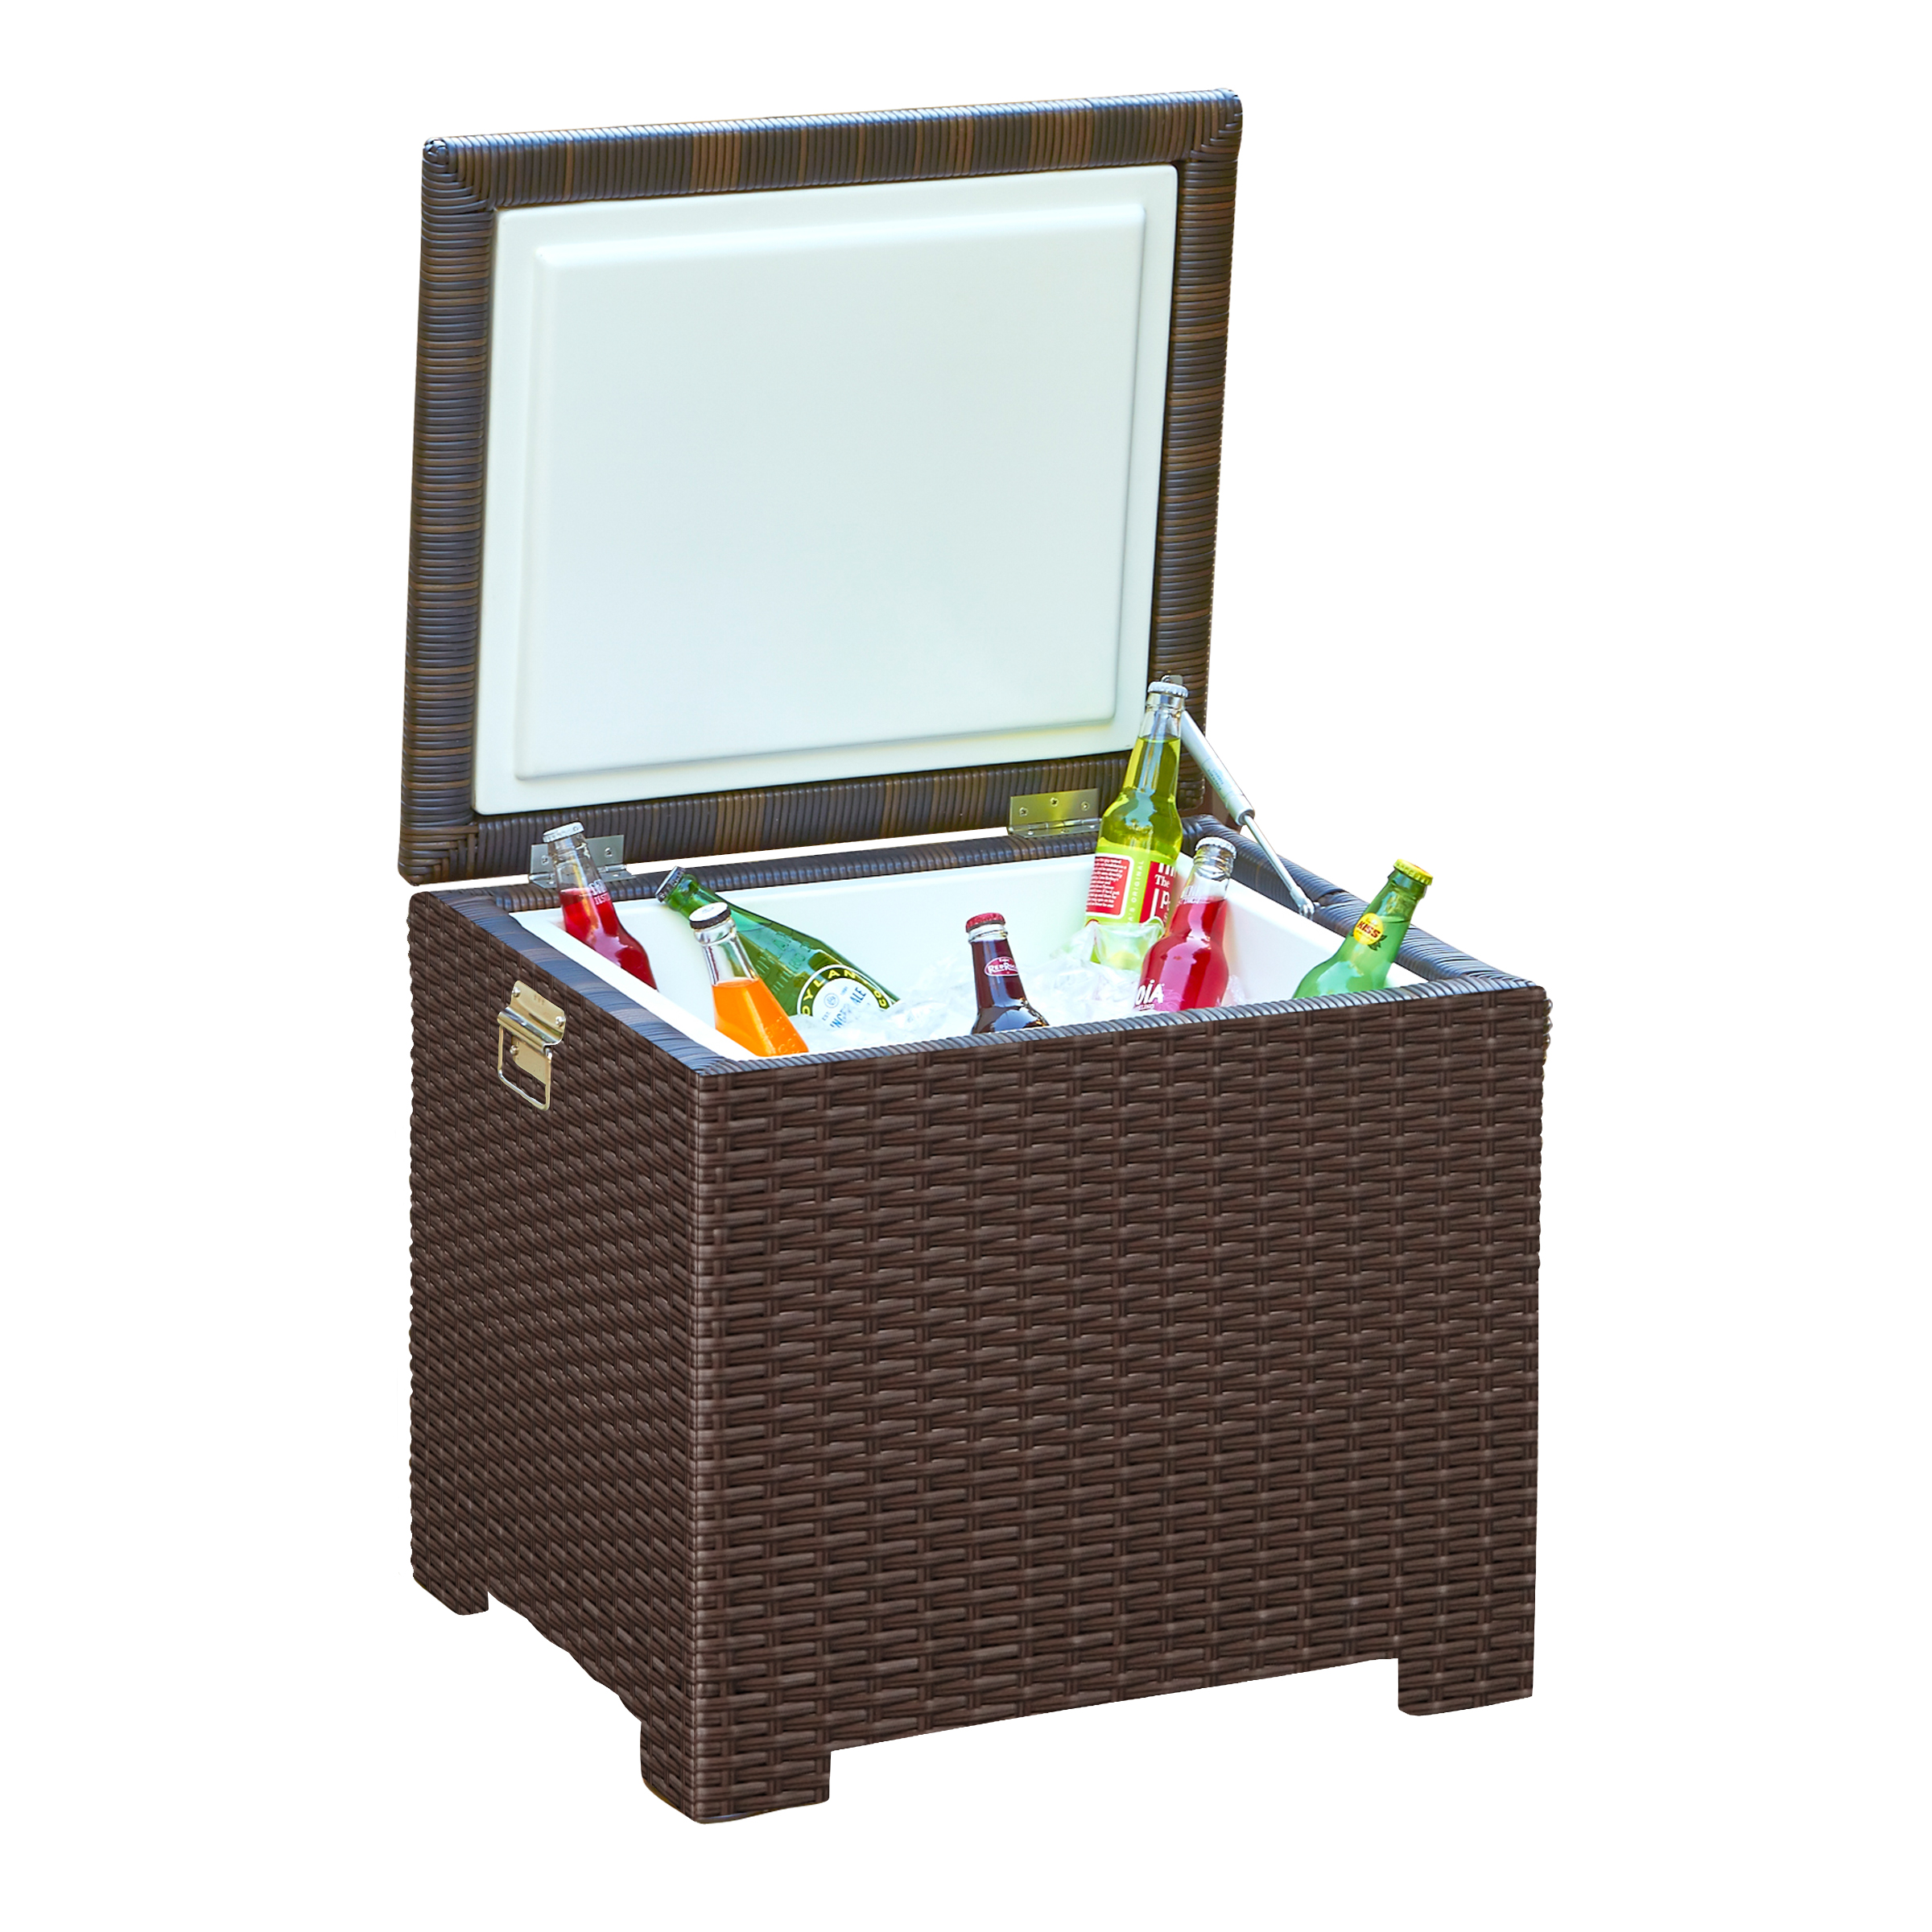 ICE CHEST/END TABLE RC1601 $340.00